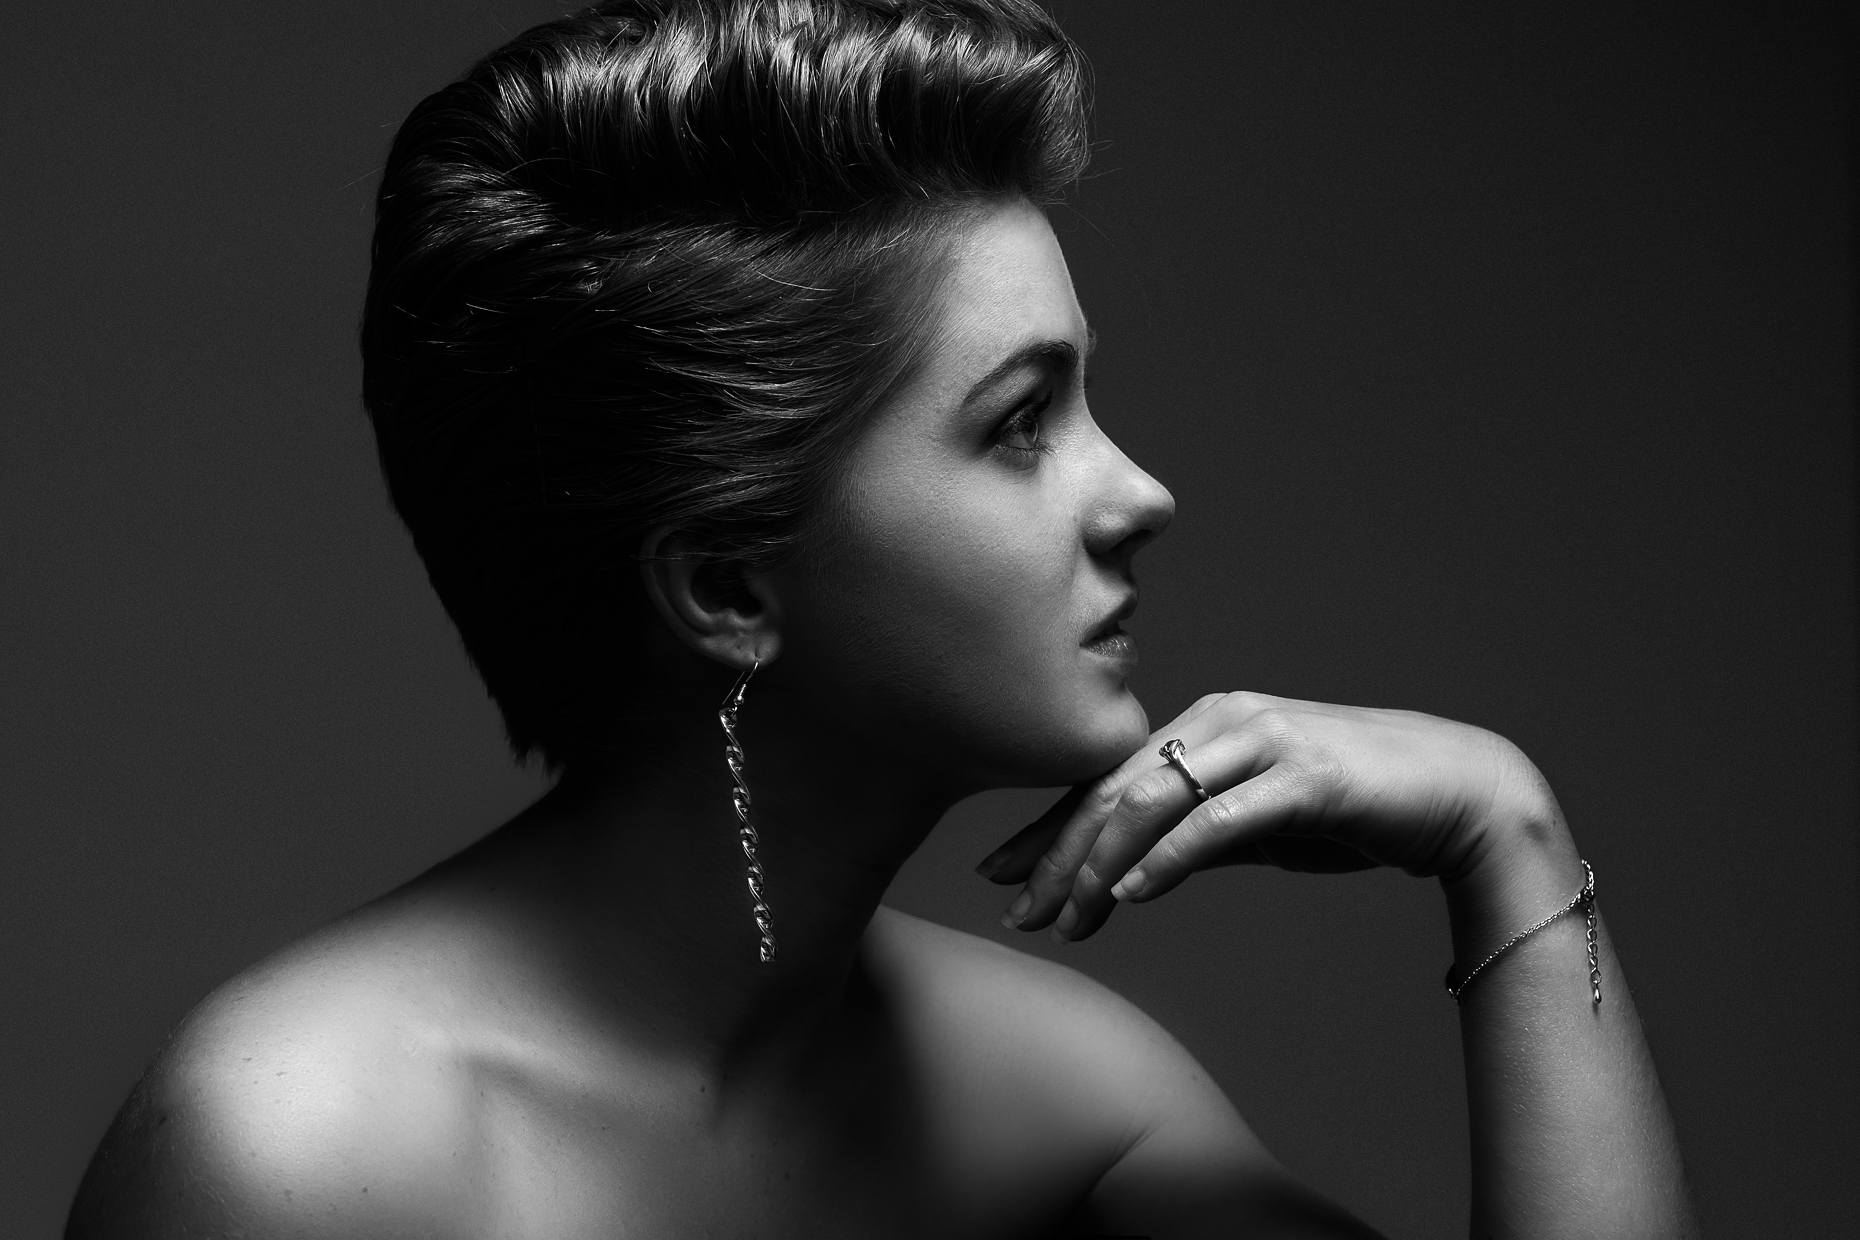 Commercial black and white portrait of a young woman in profile.